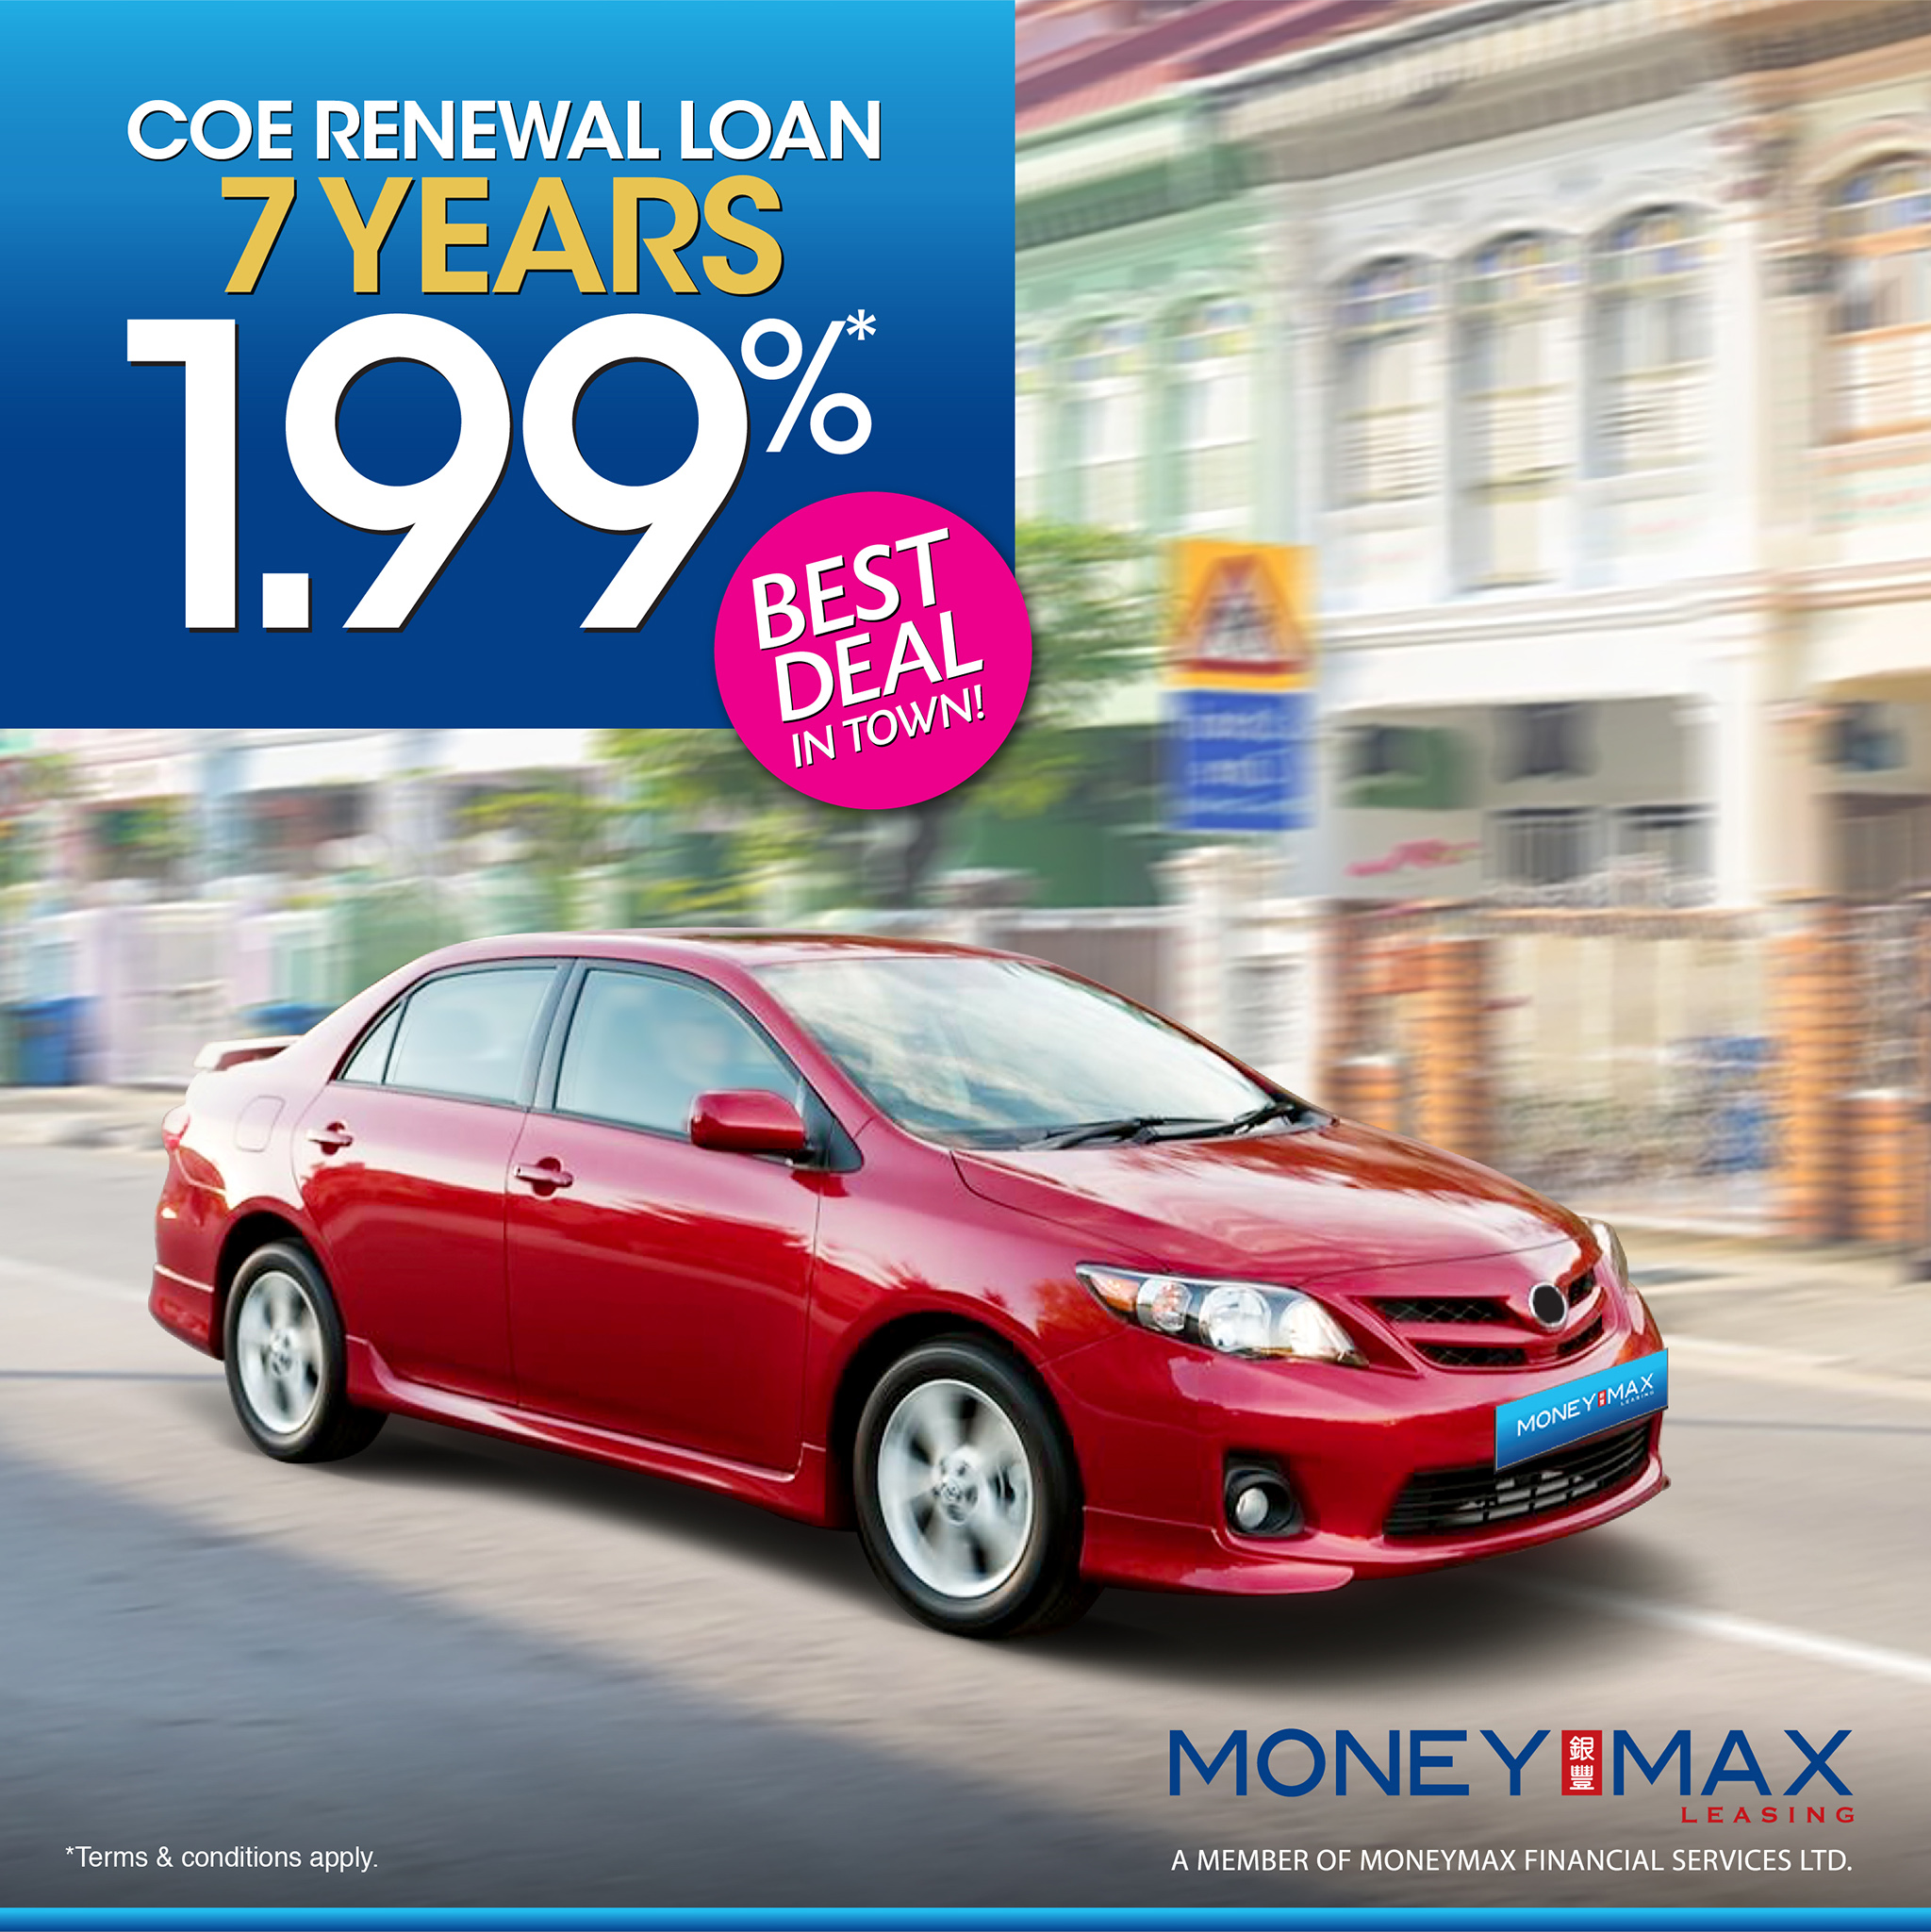 COE RENEWAL LOAN MONEYMAX LEASING RENEW COE